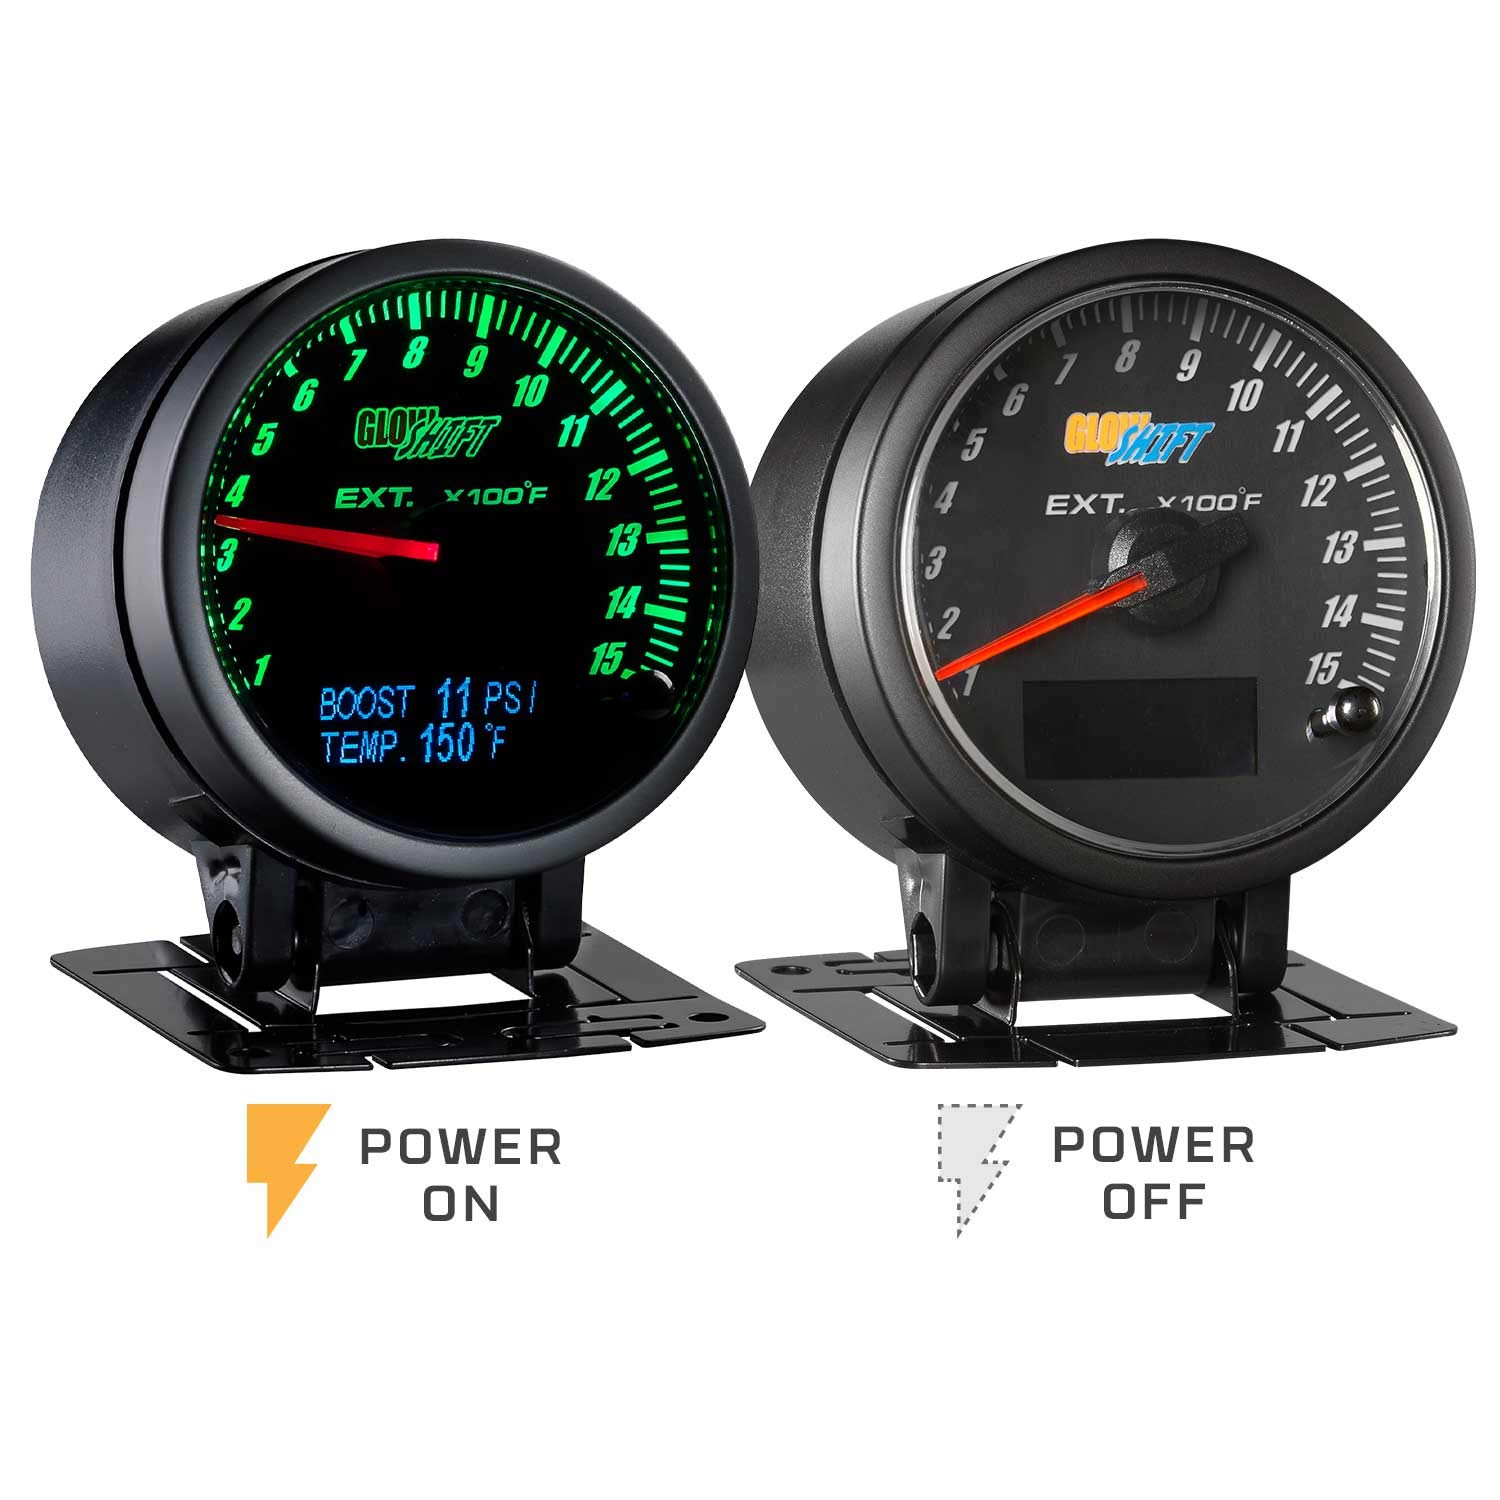 GlowShift 3in1 Analog 1500 F Pyrometer Exhaust Gas Temp EGT Gauge Kit with Digital 60 PSI Boost & 300 F Temperature Readings - 10 Selectable LED Colors - Black Dial - Clear Lens - 2-3/8'' 60mm by GlowShift (Image #8)